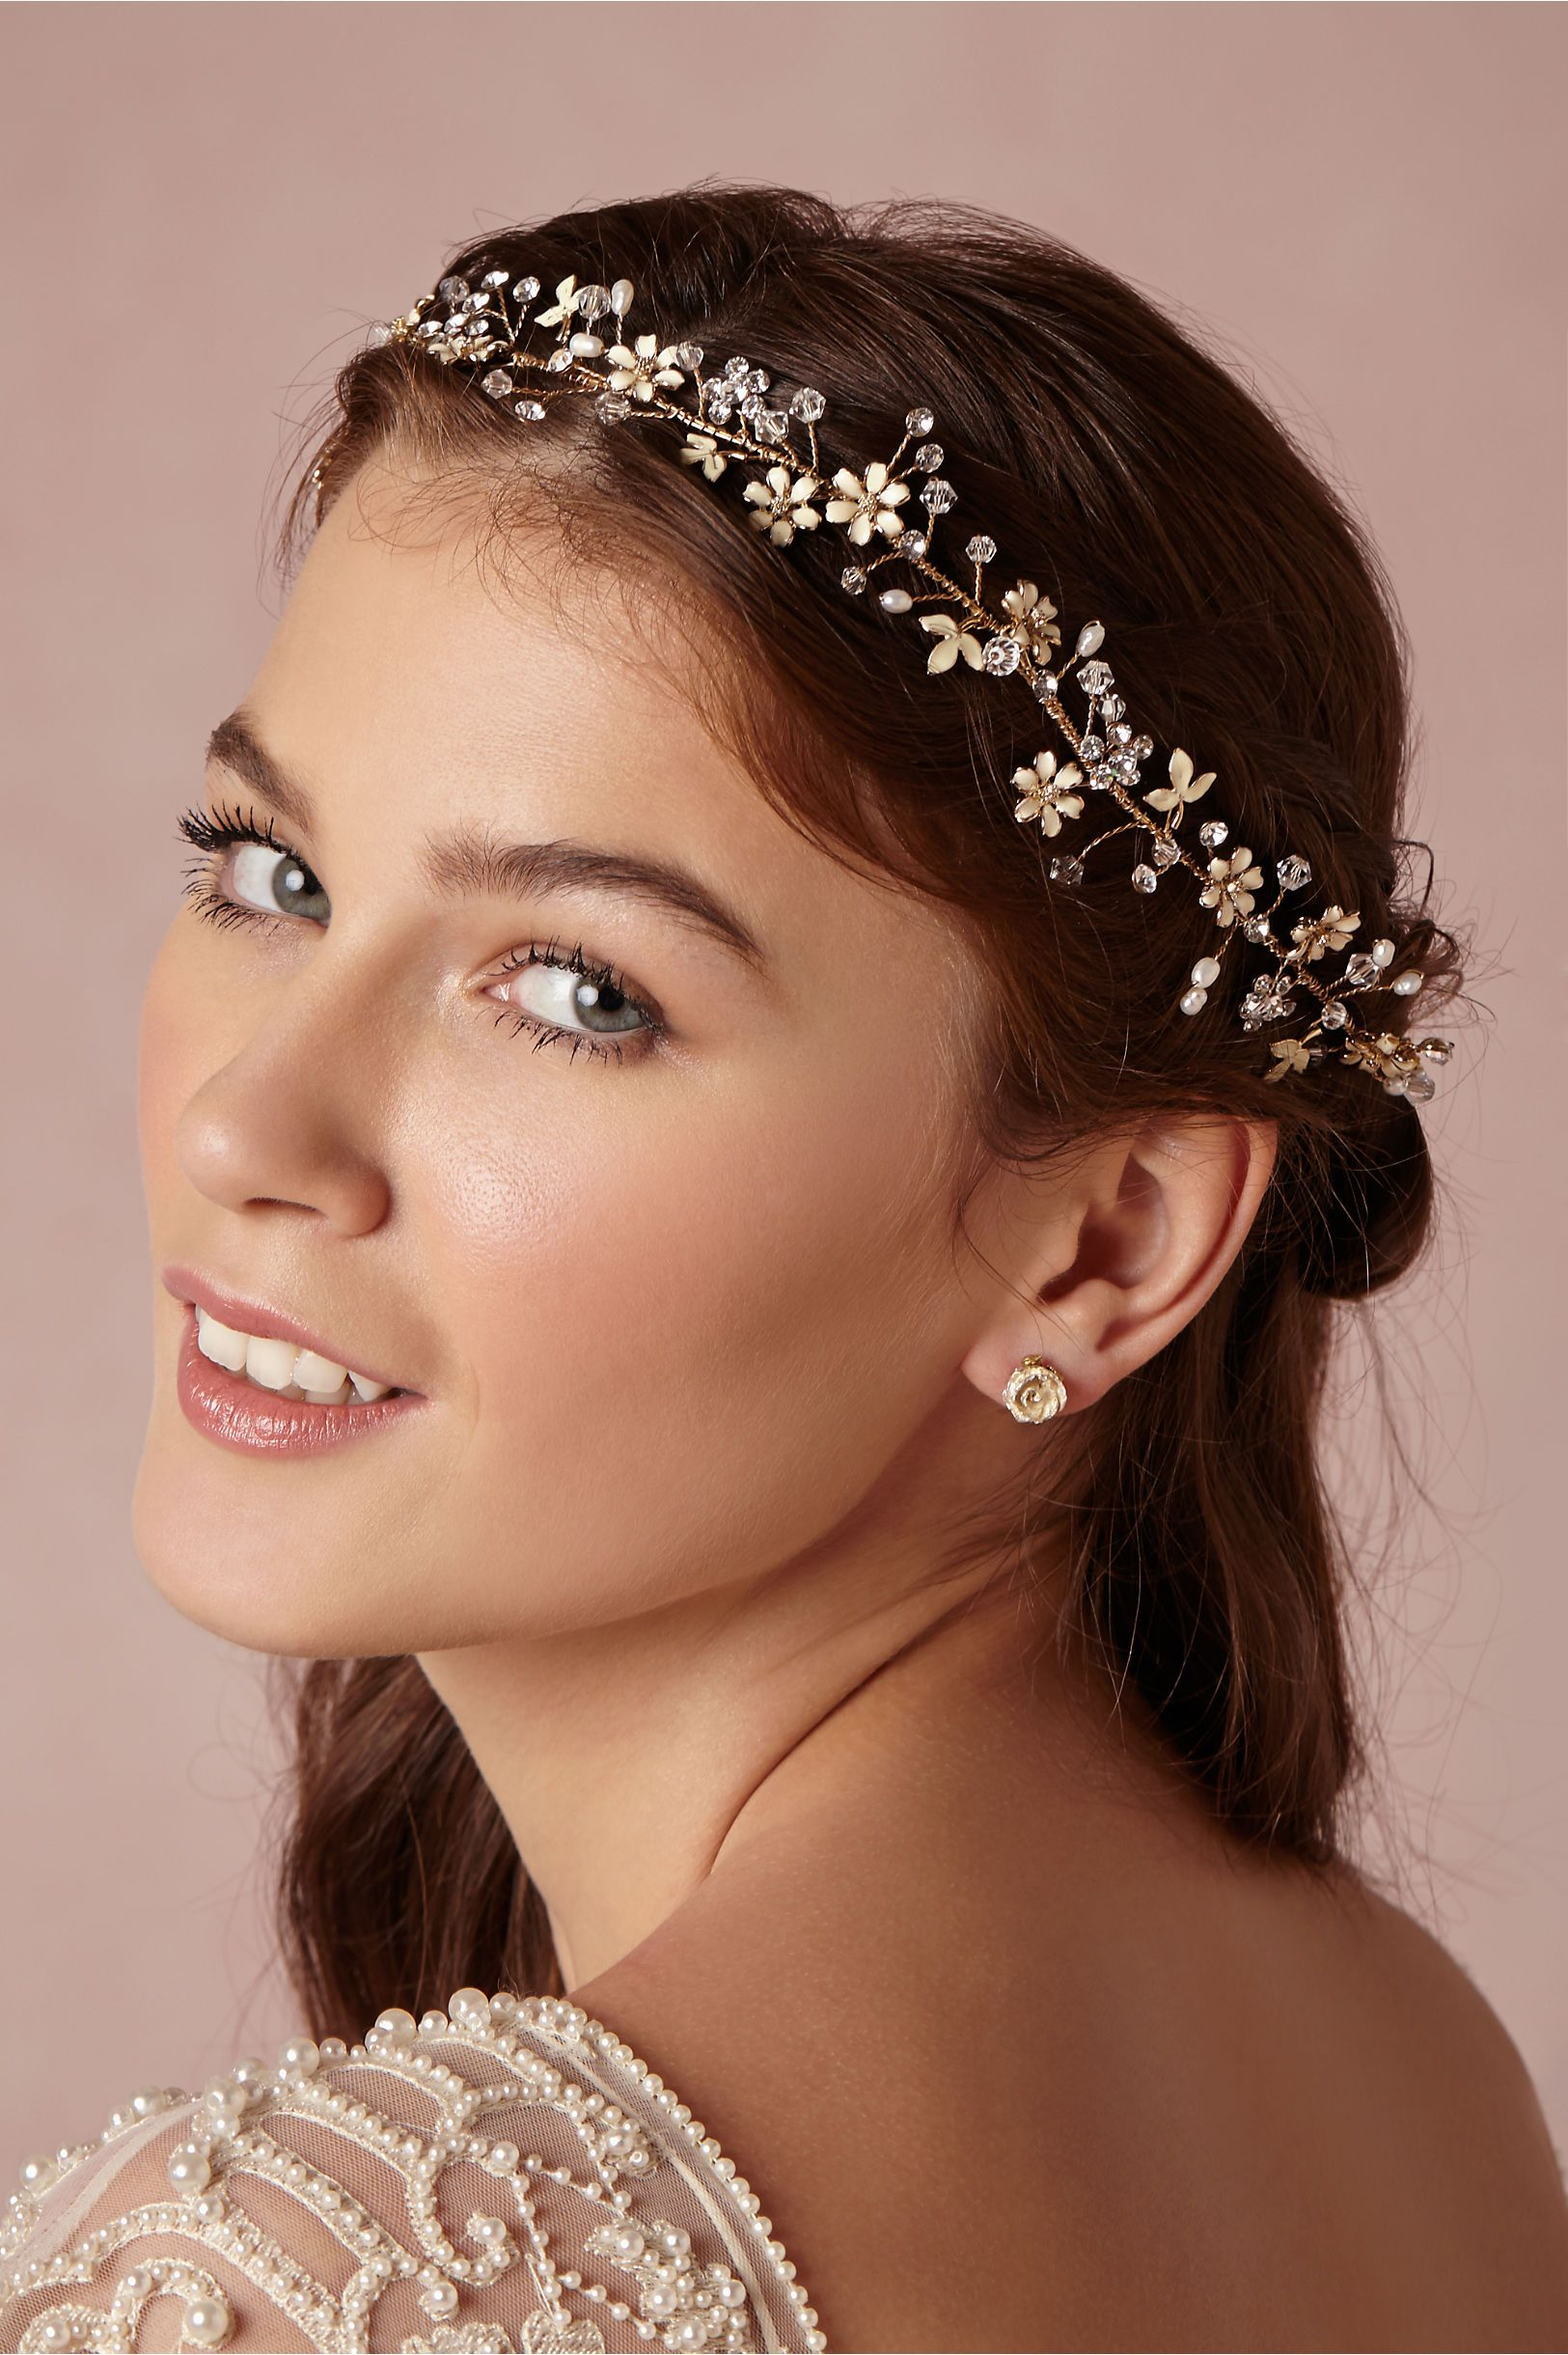 Buttercup Halo in Bride Veils & Headpieces at BHLDN